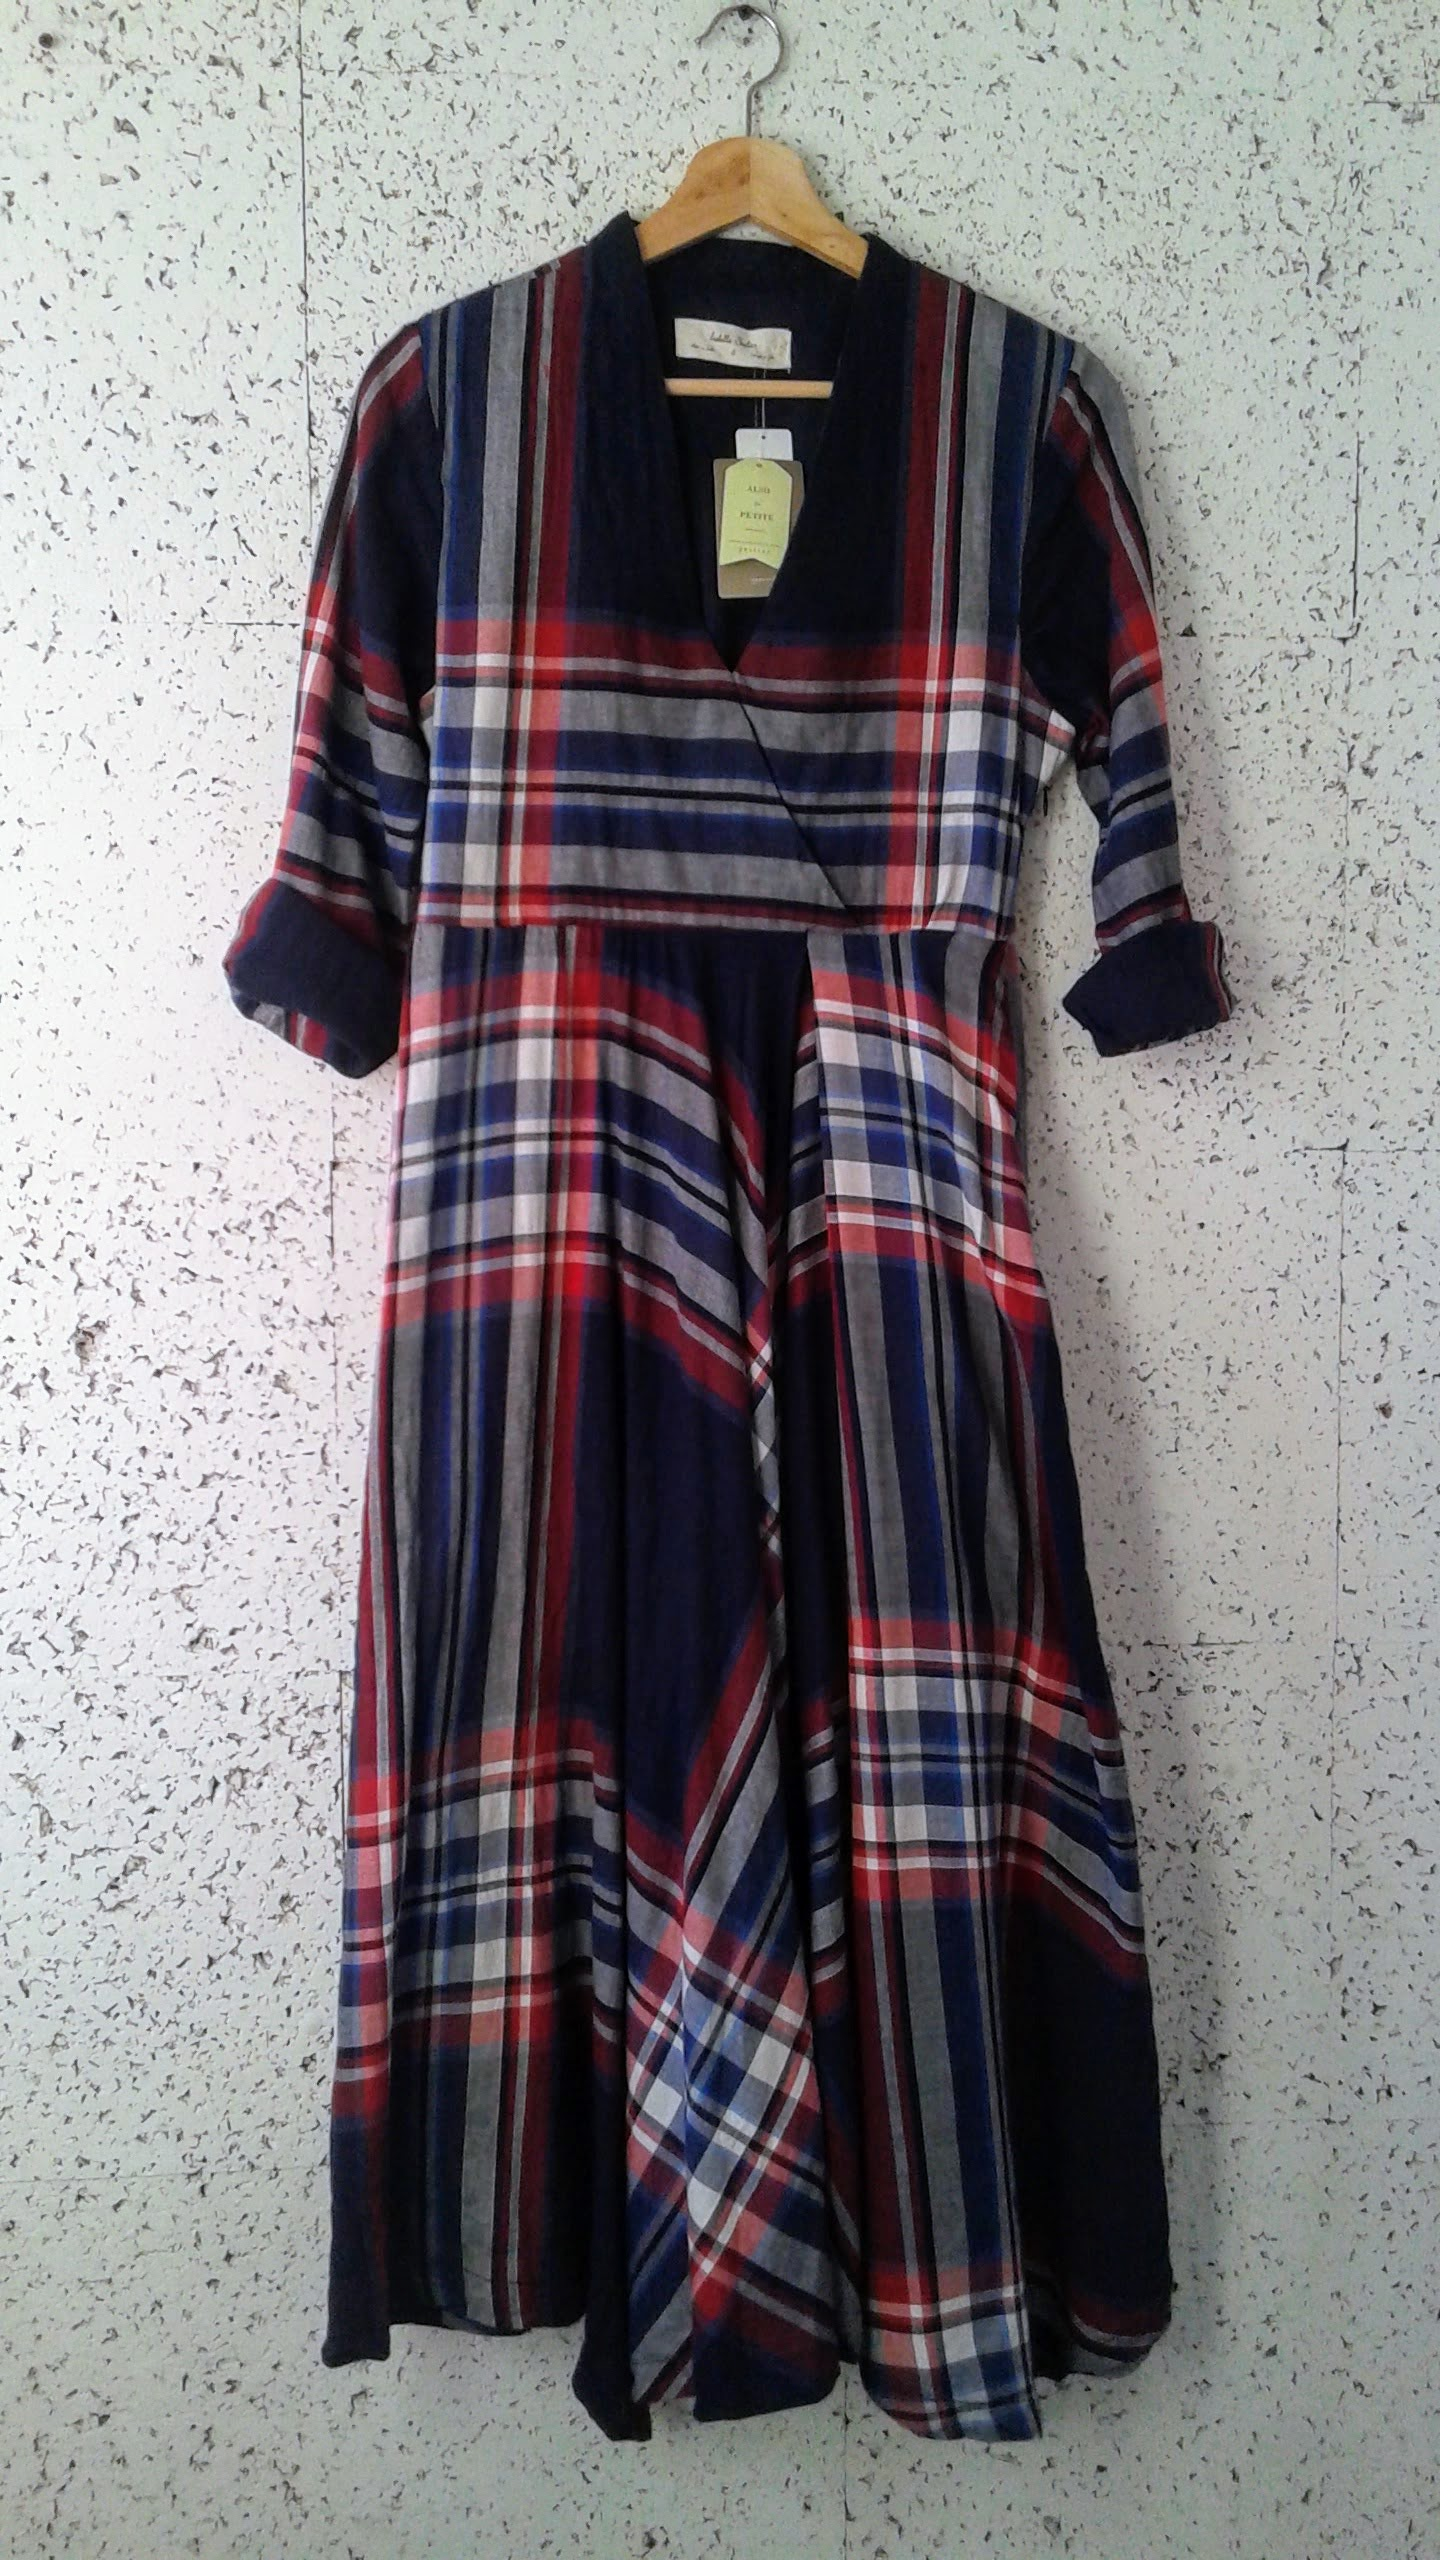 Isabella Sinclair dress (NWT); Size S, $58